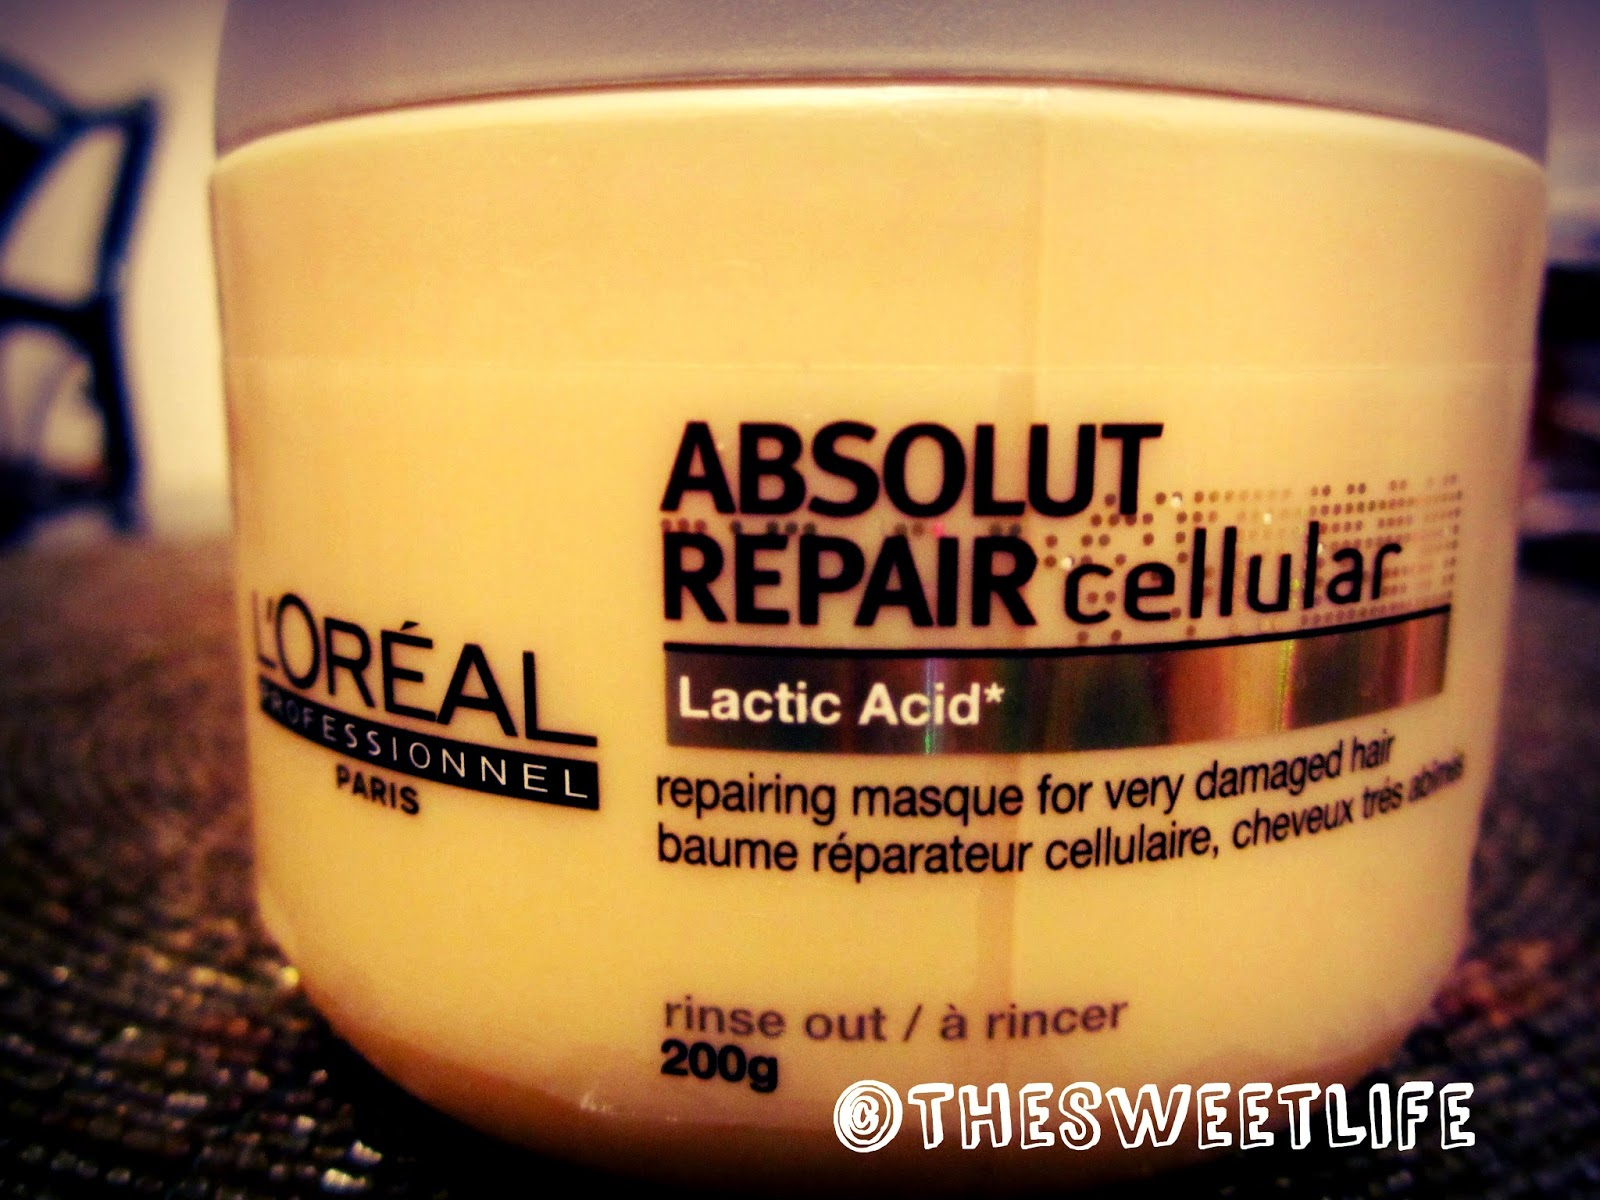 Loreal Professional Absolut Repair Cellular Repairing Masque Review